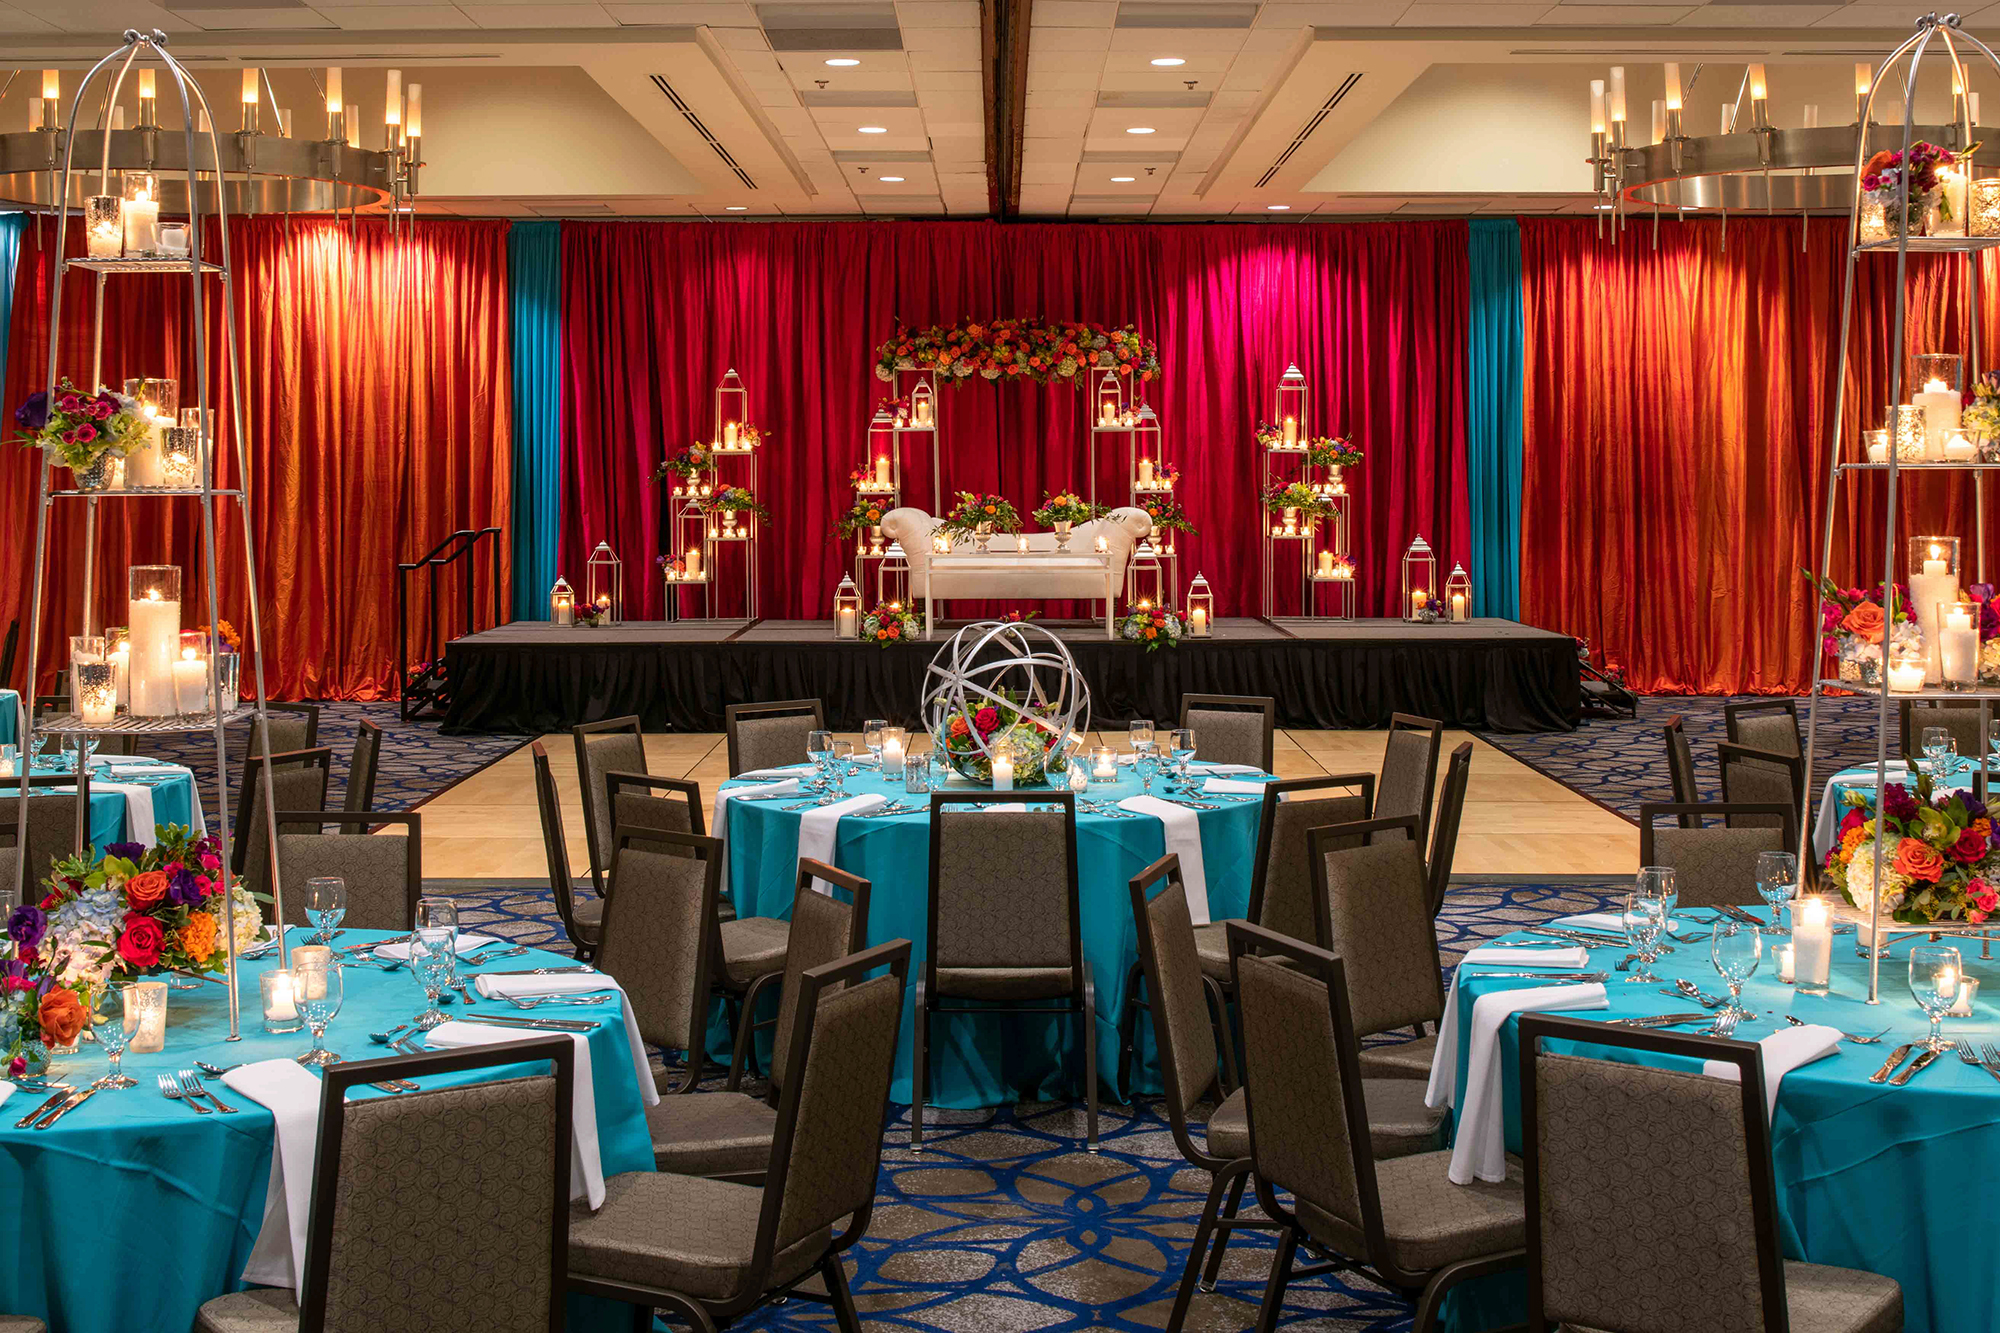 Hilton_Bellevue_Meeting_Grand_Ballroom_Wedding-0007.jpg